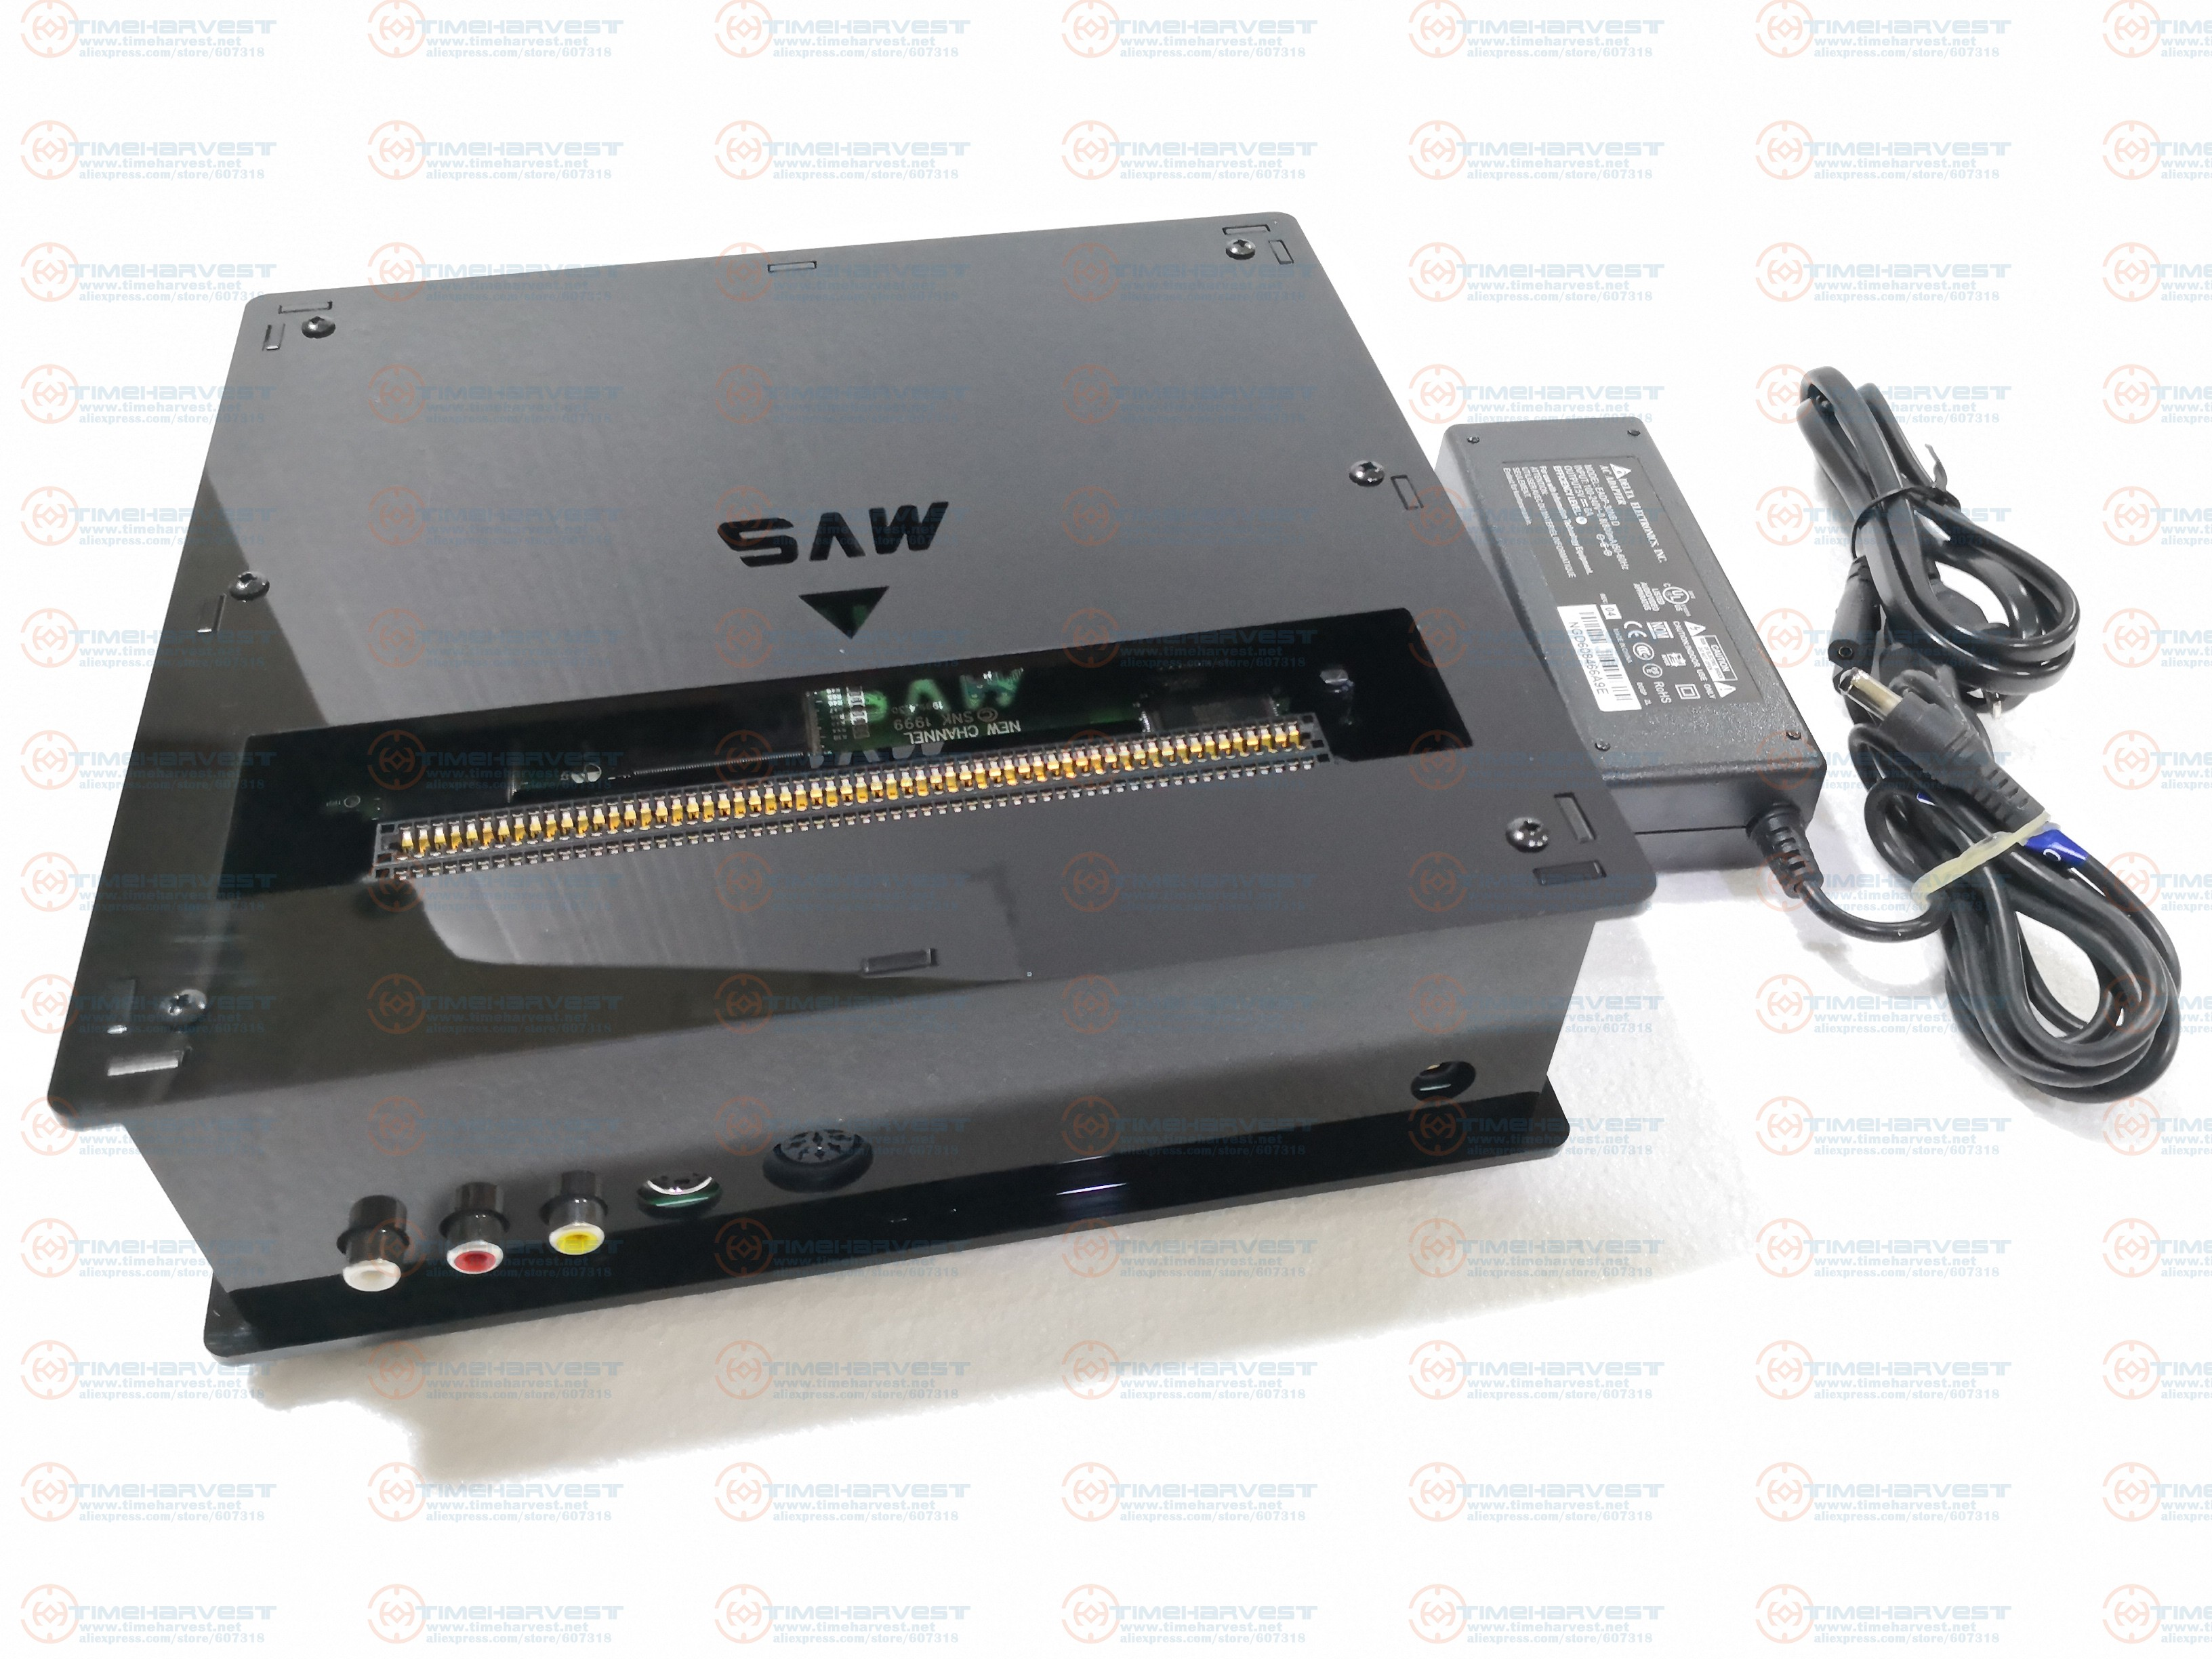 CMVS BOX JAMMA <font><b>CBOX</b></font> Motherboard <font><b>MVS</b></font> -1C to DB 15P NEO GEO SNK Joypad PS2 Gamepad With AV RGBS Output for Game Cartridge TV Games image